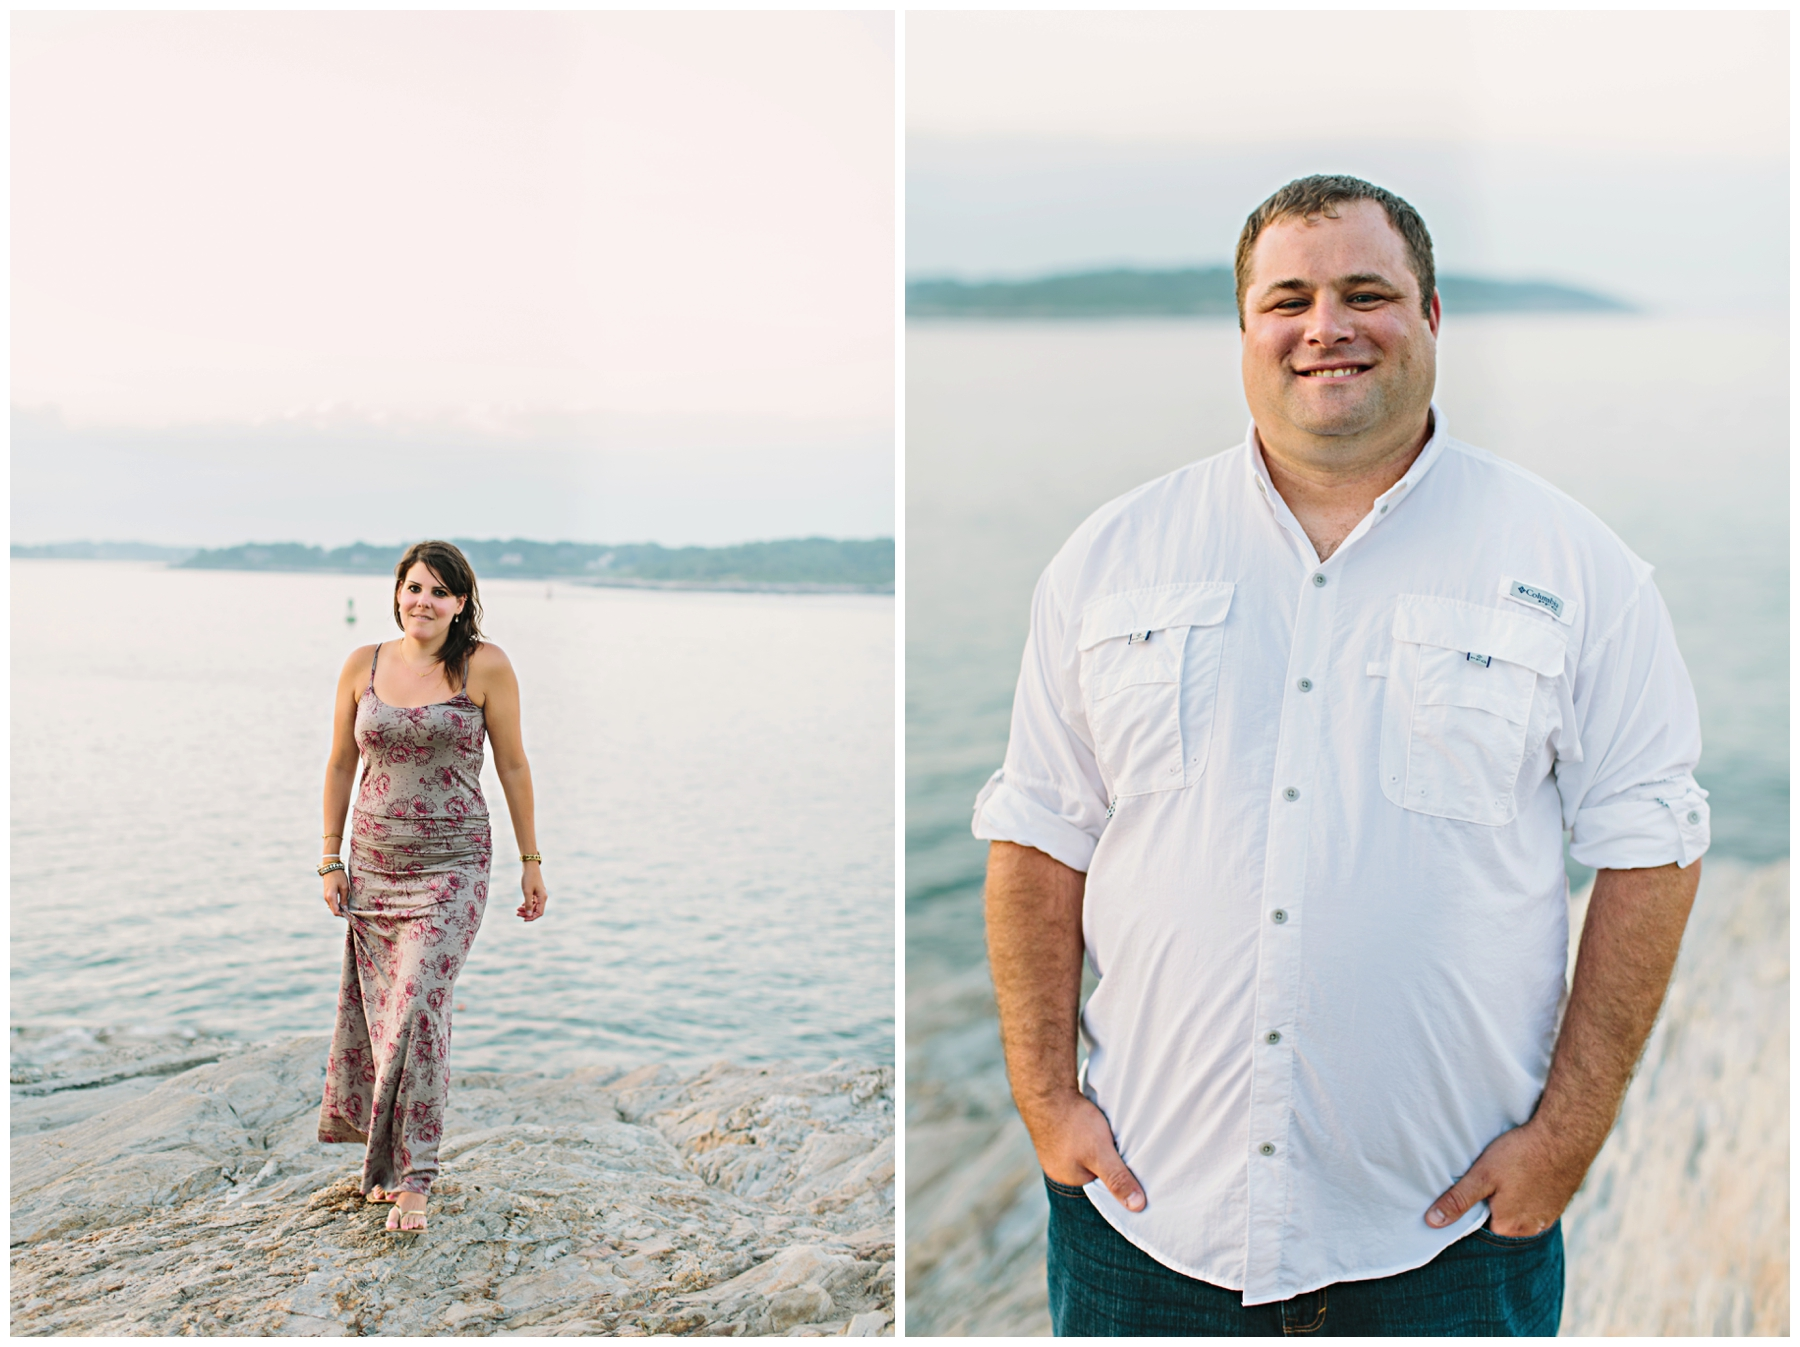 Maine_Photographer_Engagements_FortWilliams_PortlandHeadLight_lighthouse_coastal_seaside-024